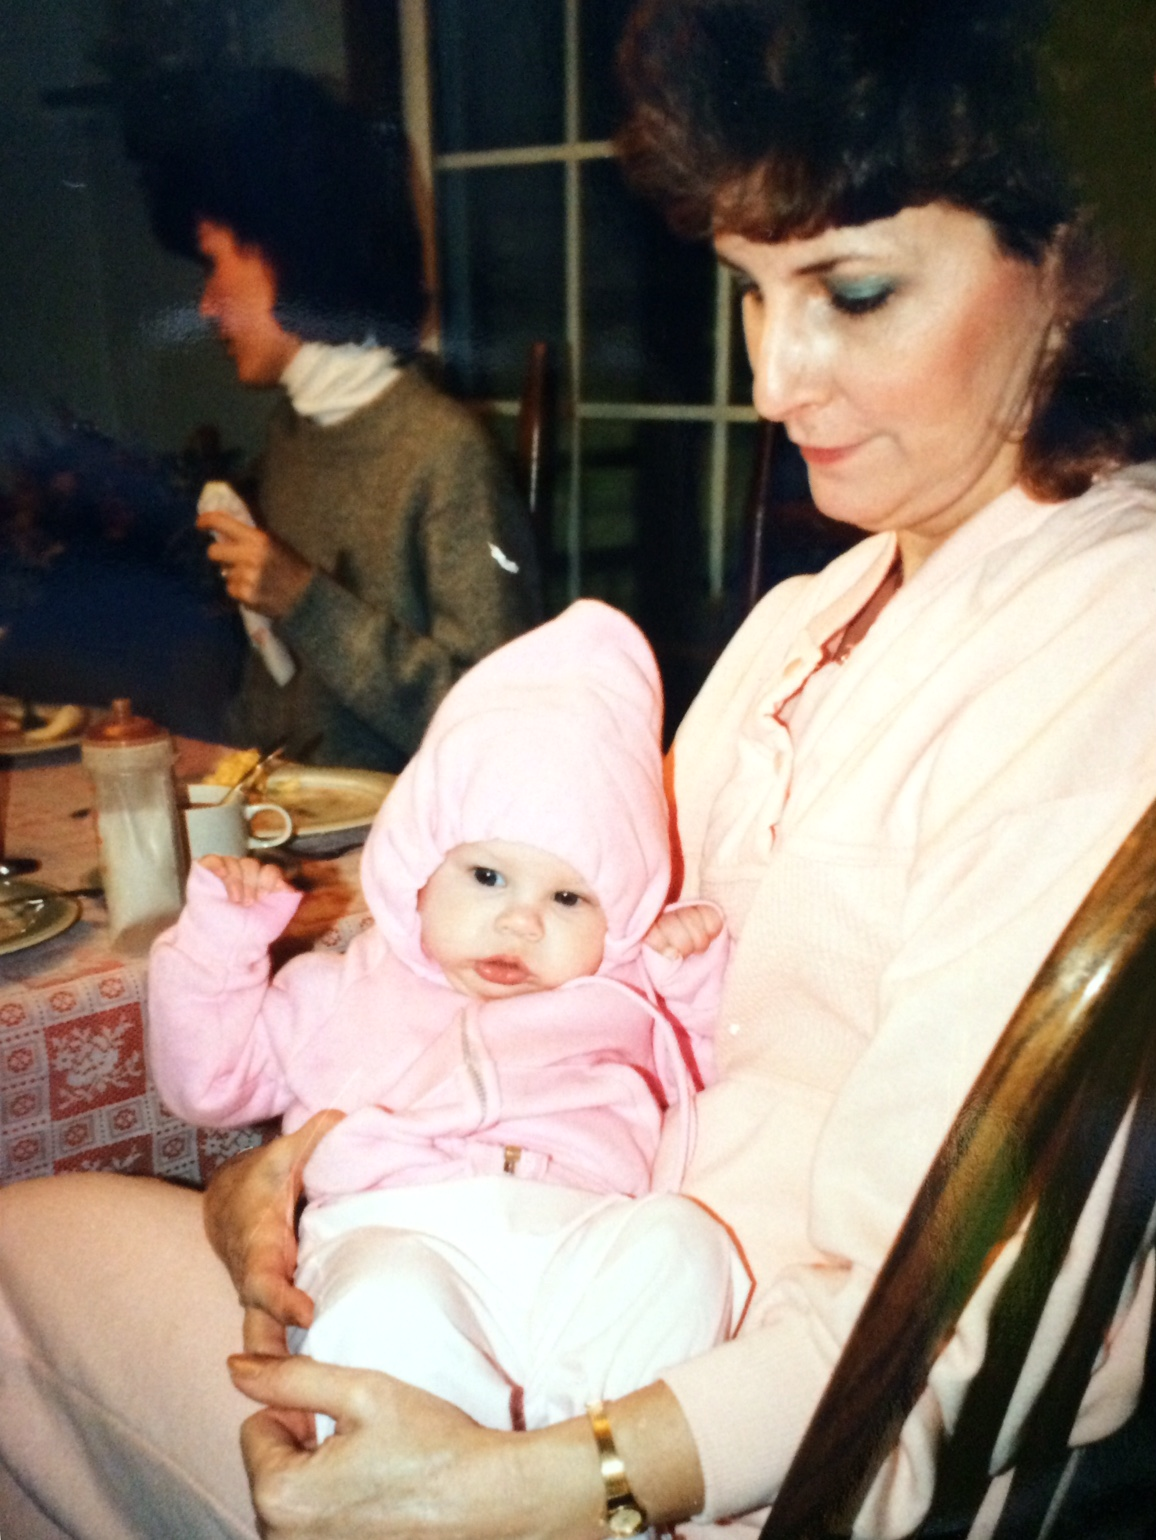 Sitting at the dining room table, Nonnie is holding a little Jess. Jess is wearing a light pink zip-up hoodie with the hat on her head and the drawstrings pulled snug.